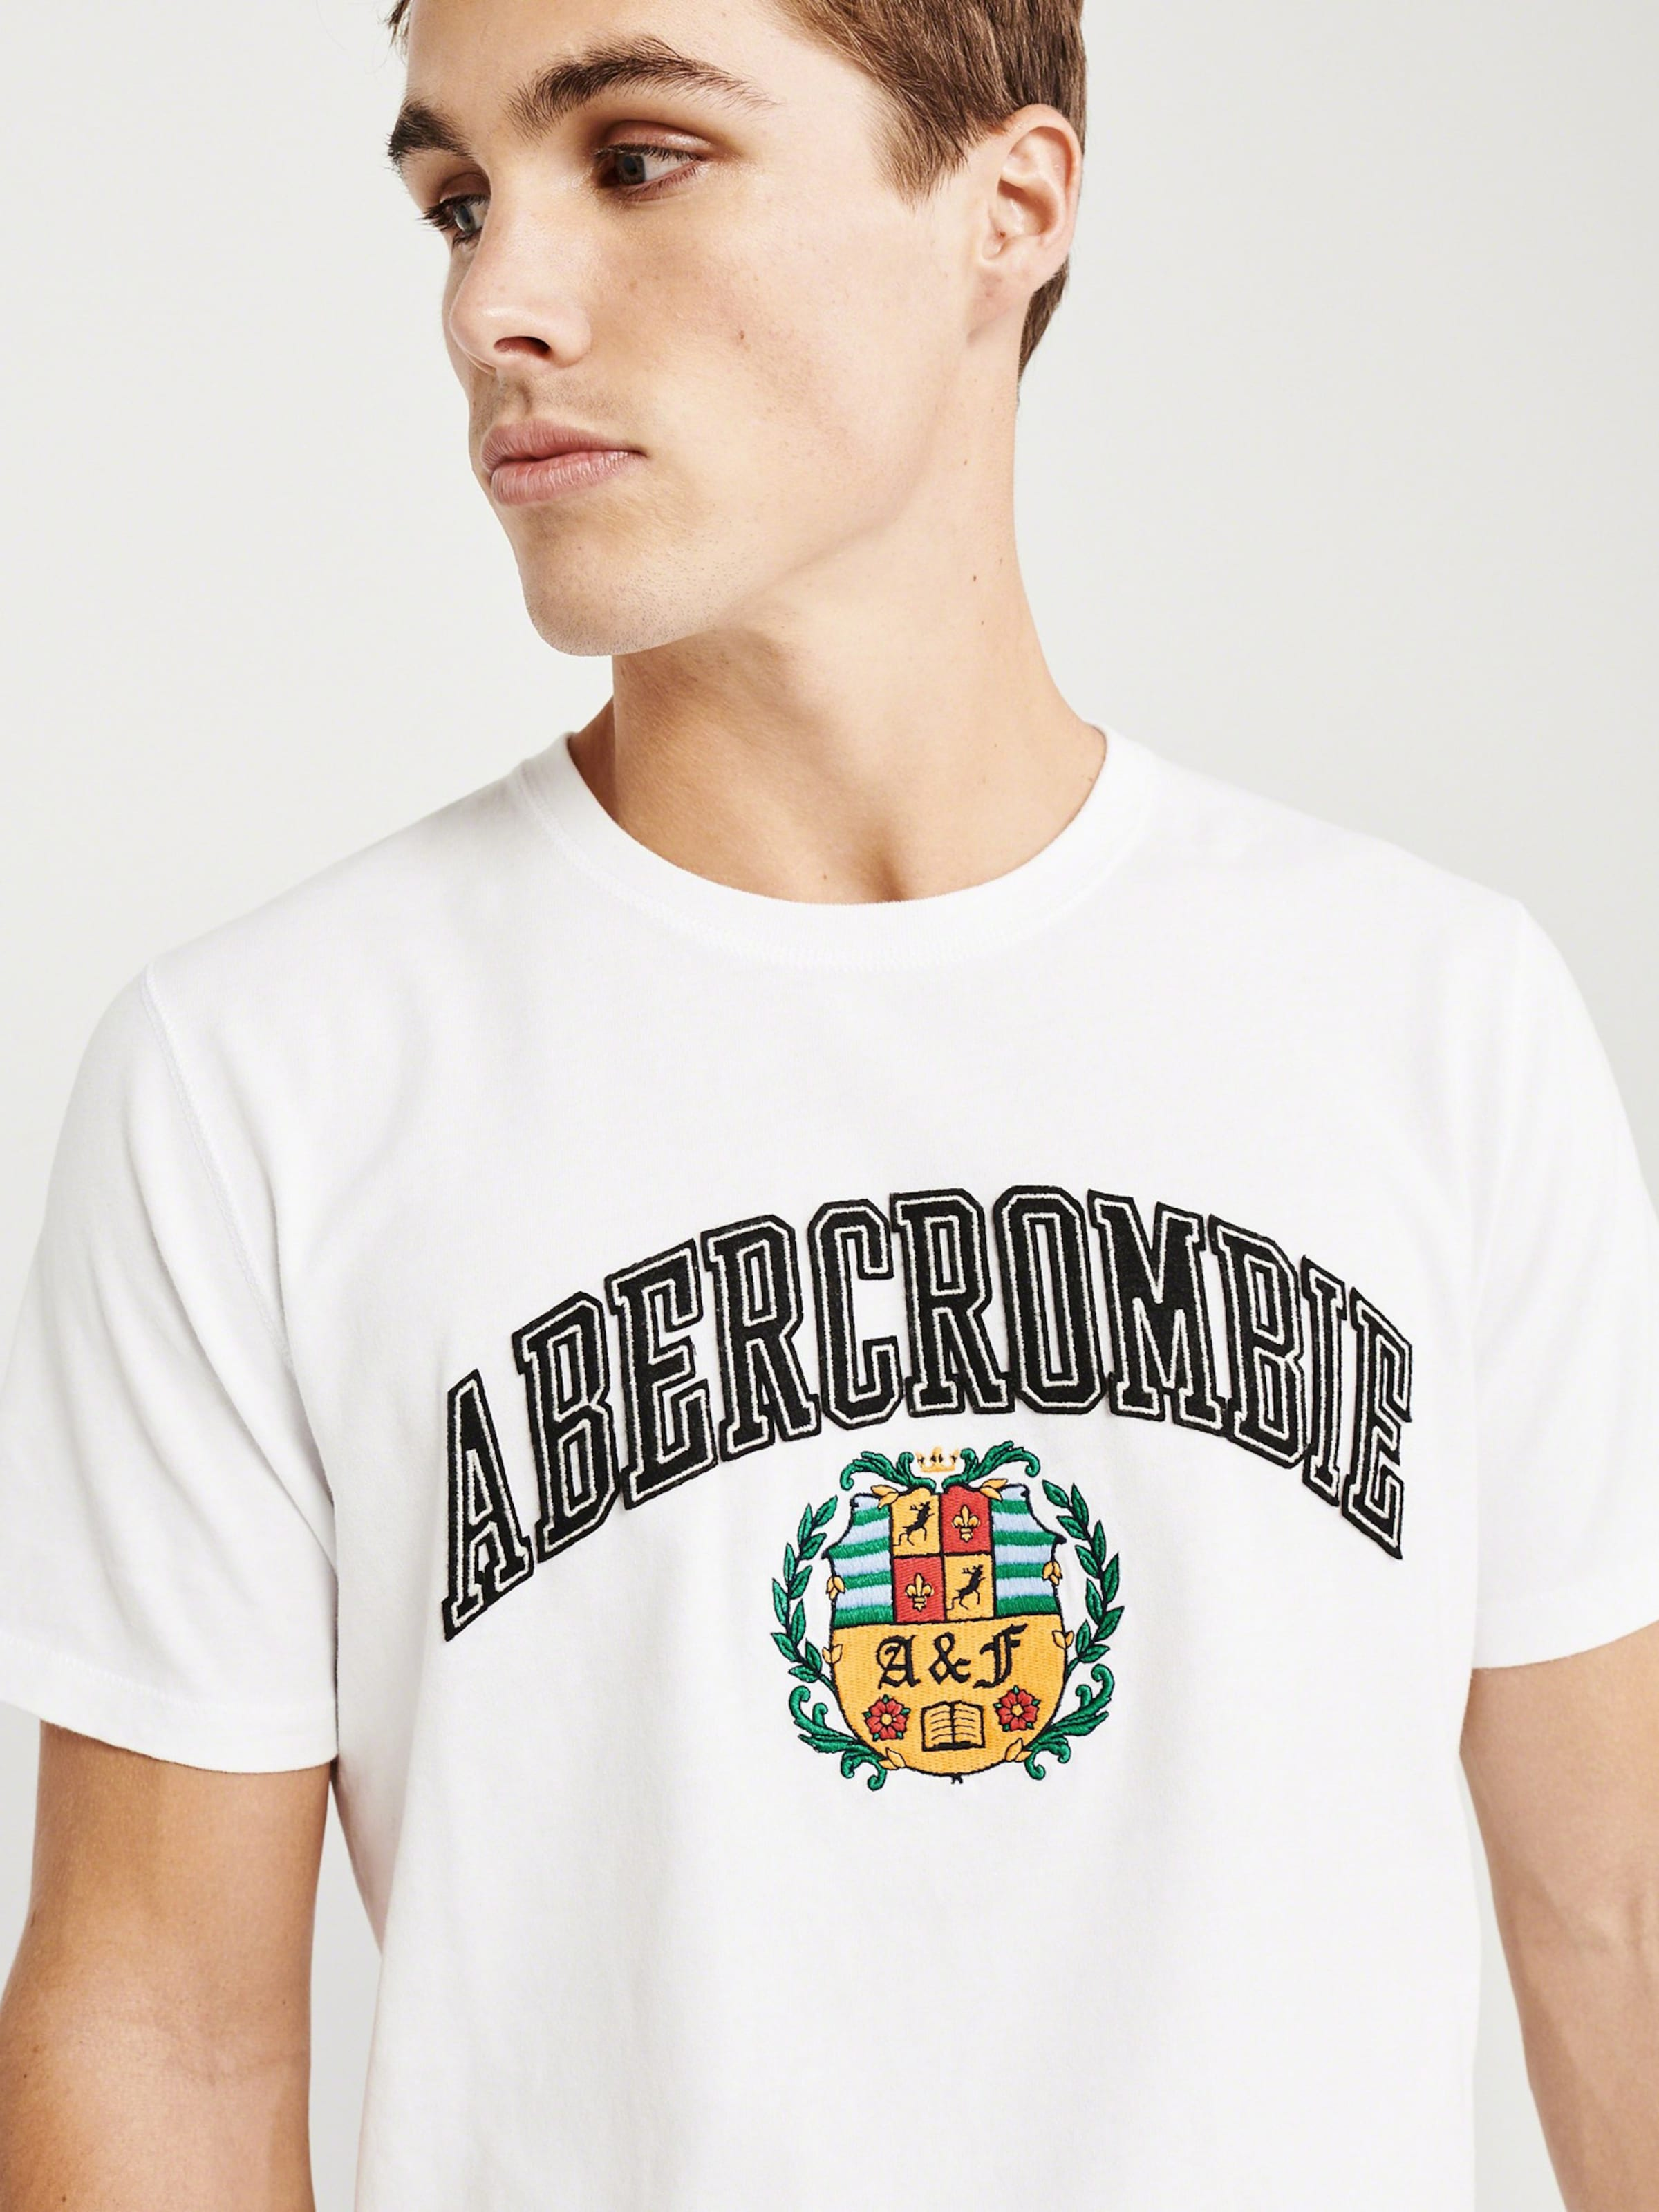 In Fitch Weiß Shirt Tech' Elevated Abercrombieamp; 'ss bIWE2DHYe9